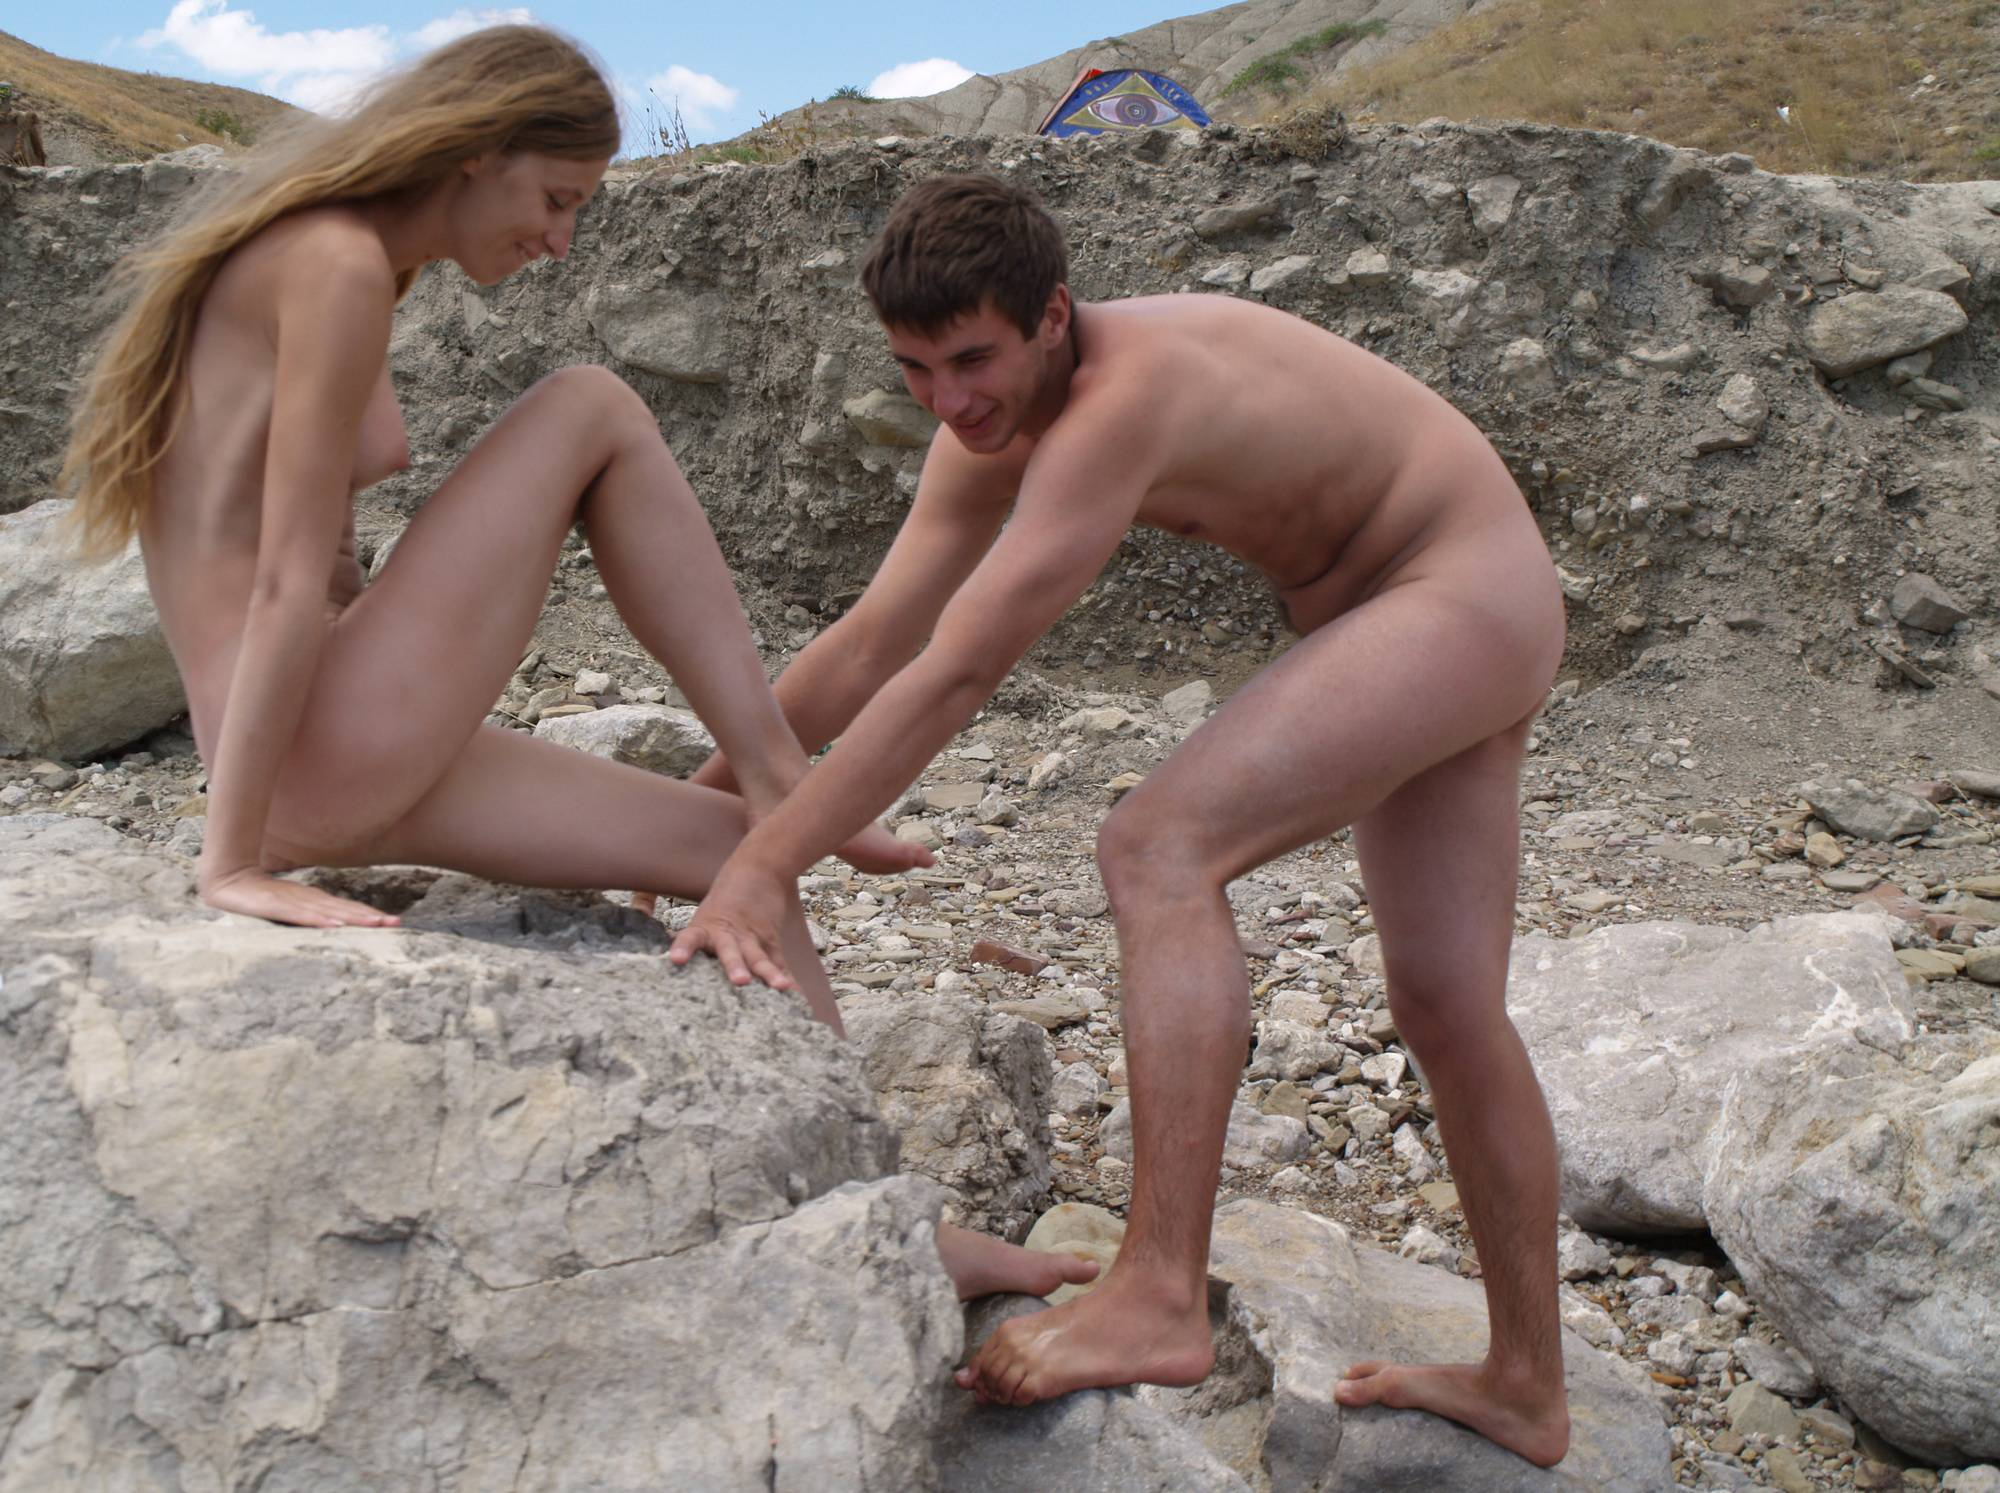 Nudist Photos Nude Couple Air Fortress - 2